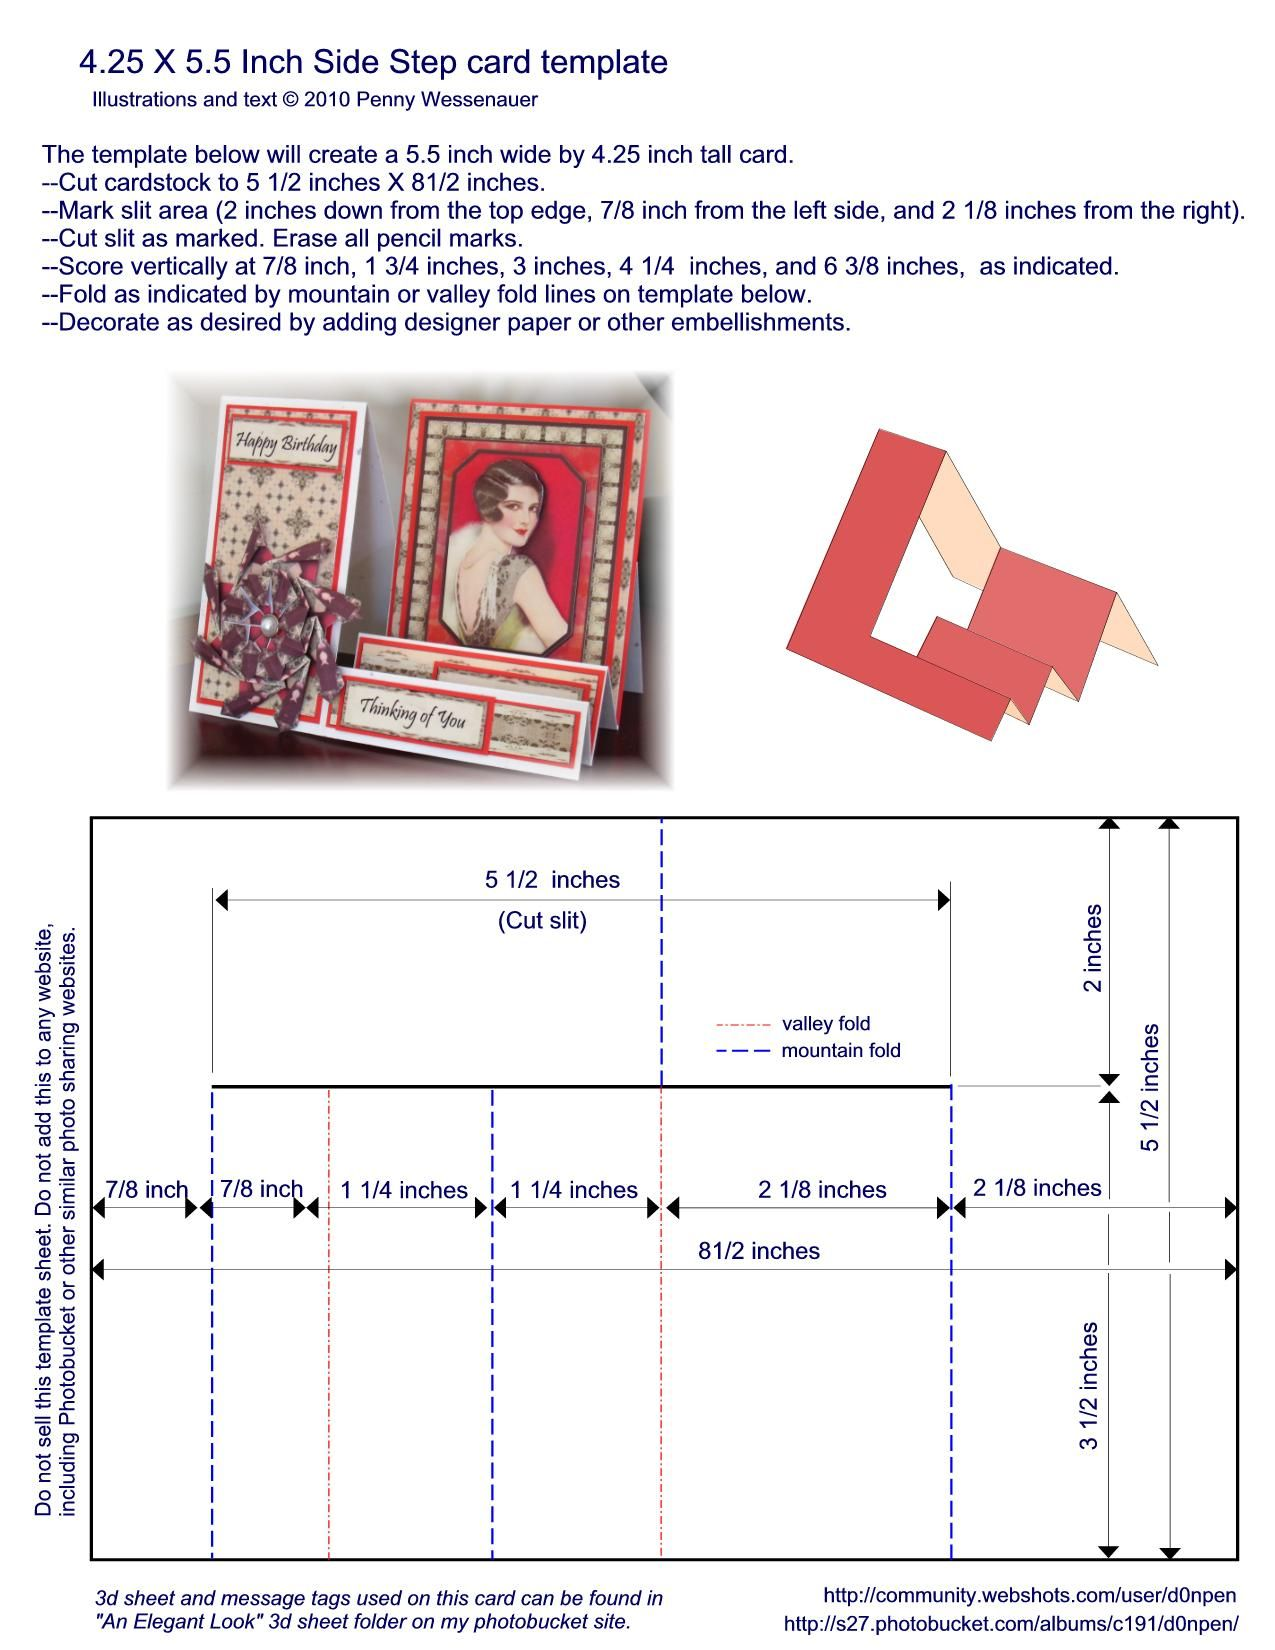 Generous 10 Envelope Template Indesign Big 10 Steps To Creating An Effective Resume Square 100 Bill Template 100 Free Resume Youthful 10x13 Envelope Template Orange12 Tab Divider Template 4.25 X 5.5 Inch Side Step Card Template  I Have Always Wanted To ..